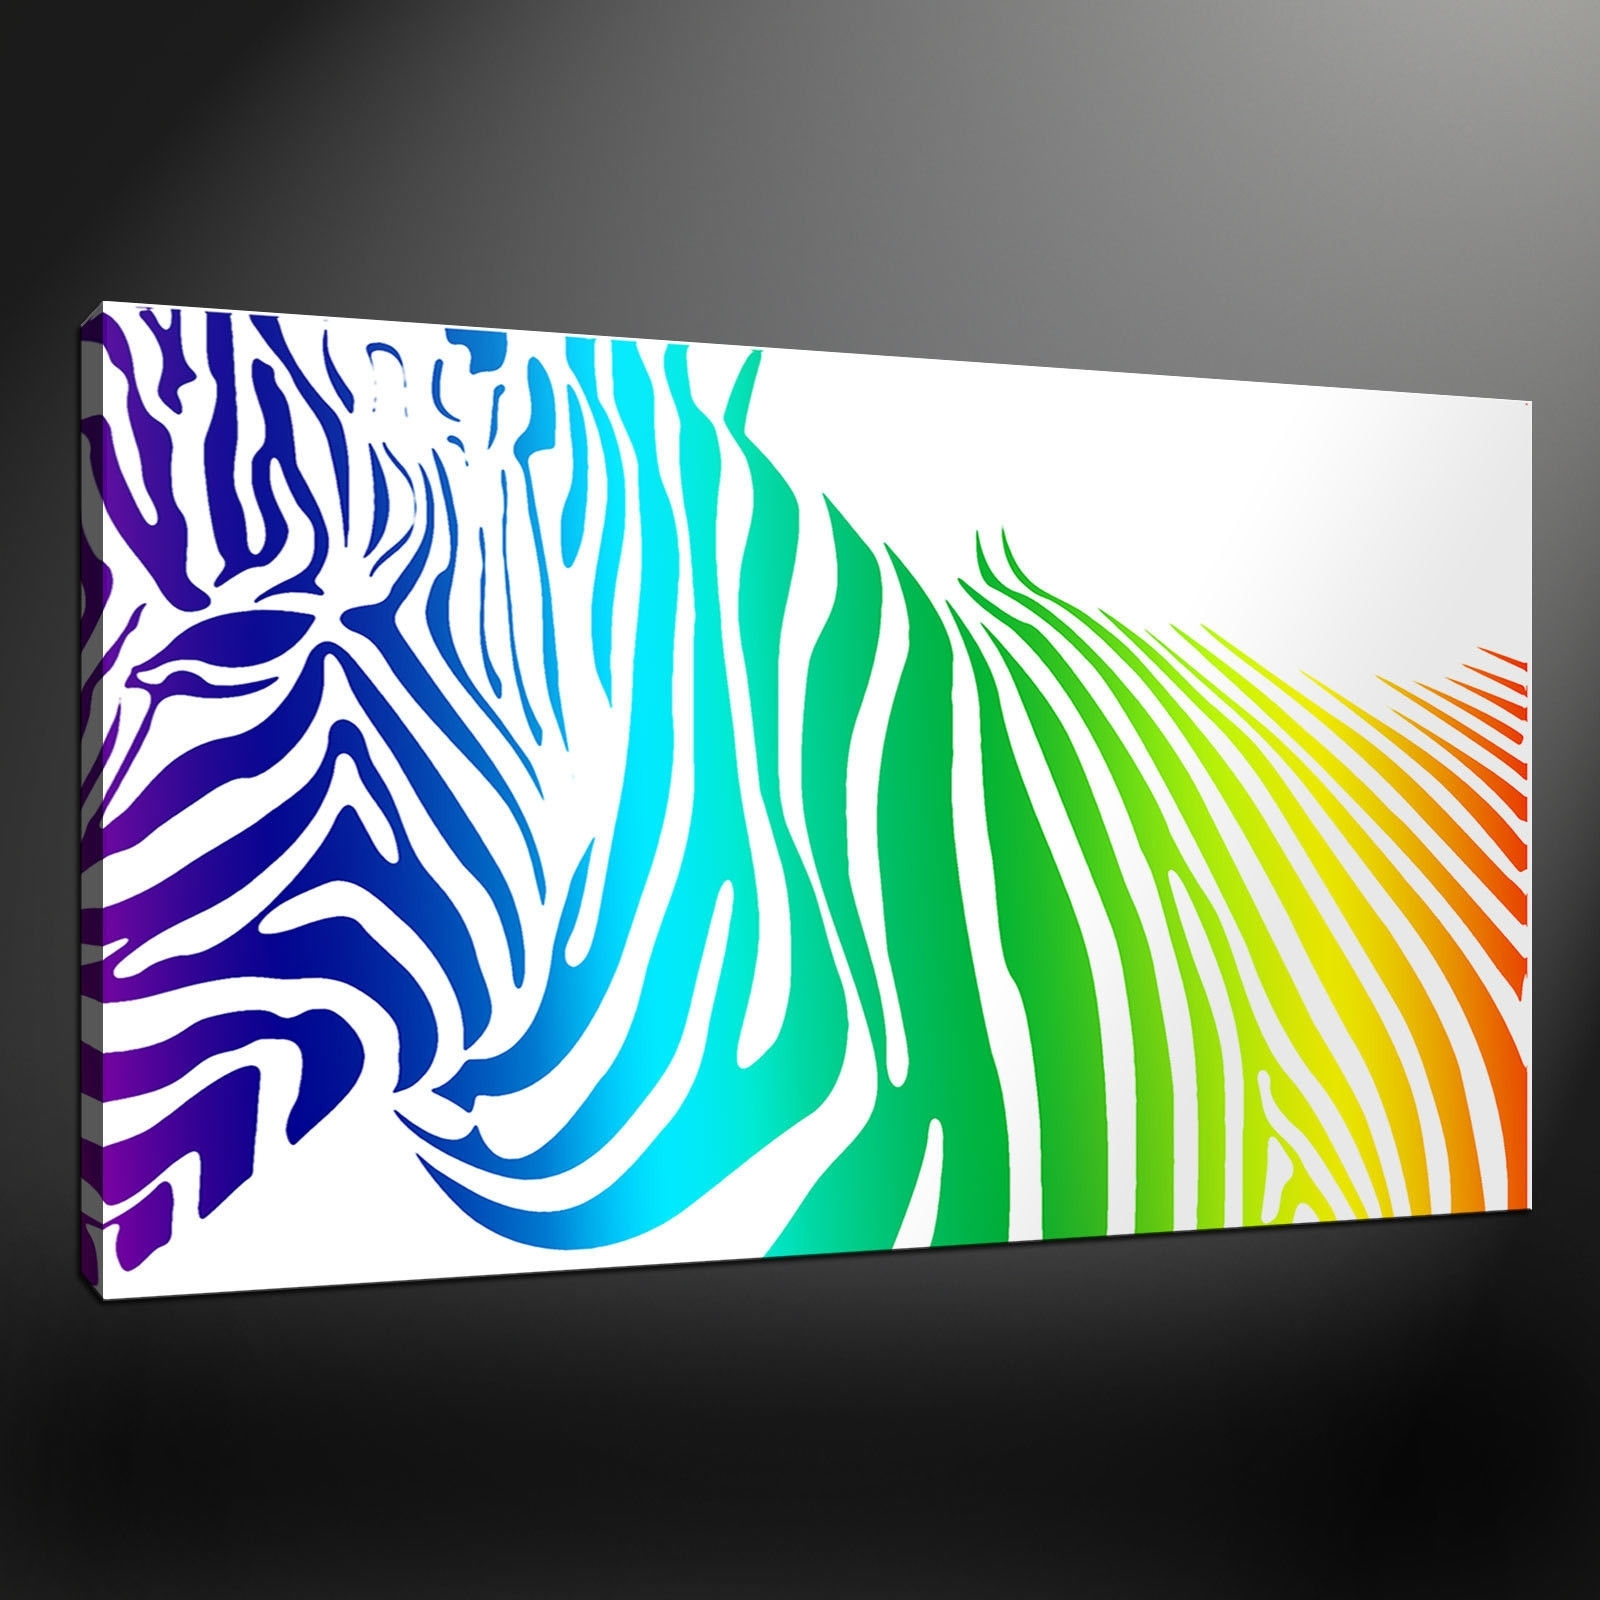 Wall Art Ideas Design : Variery Prints Zebra Canvas Wall Art Intended For Best And Newest Zebra Wall Art Canvas (View 9 of 15)